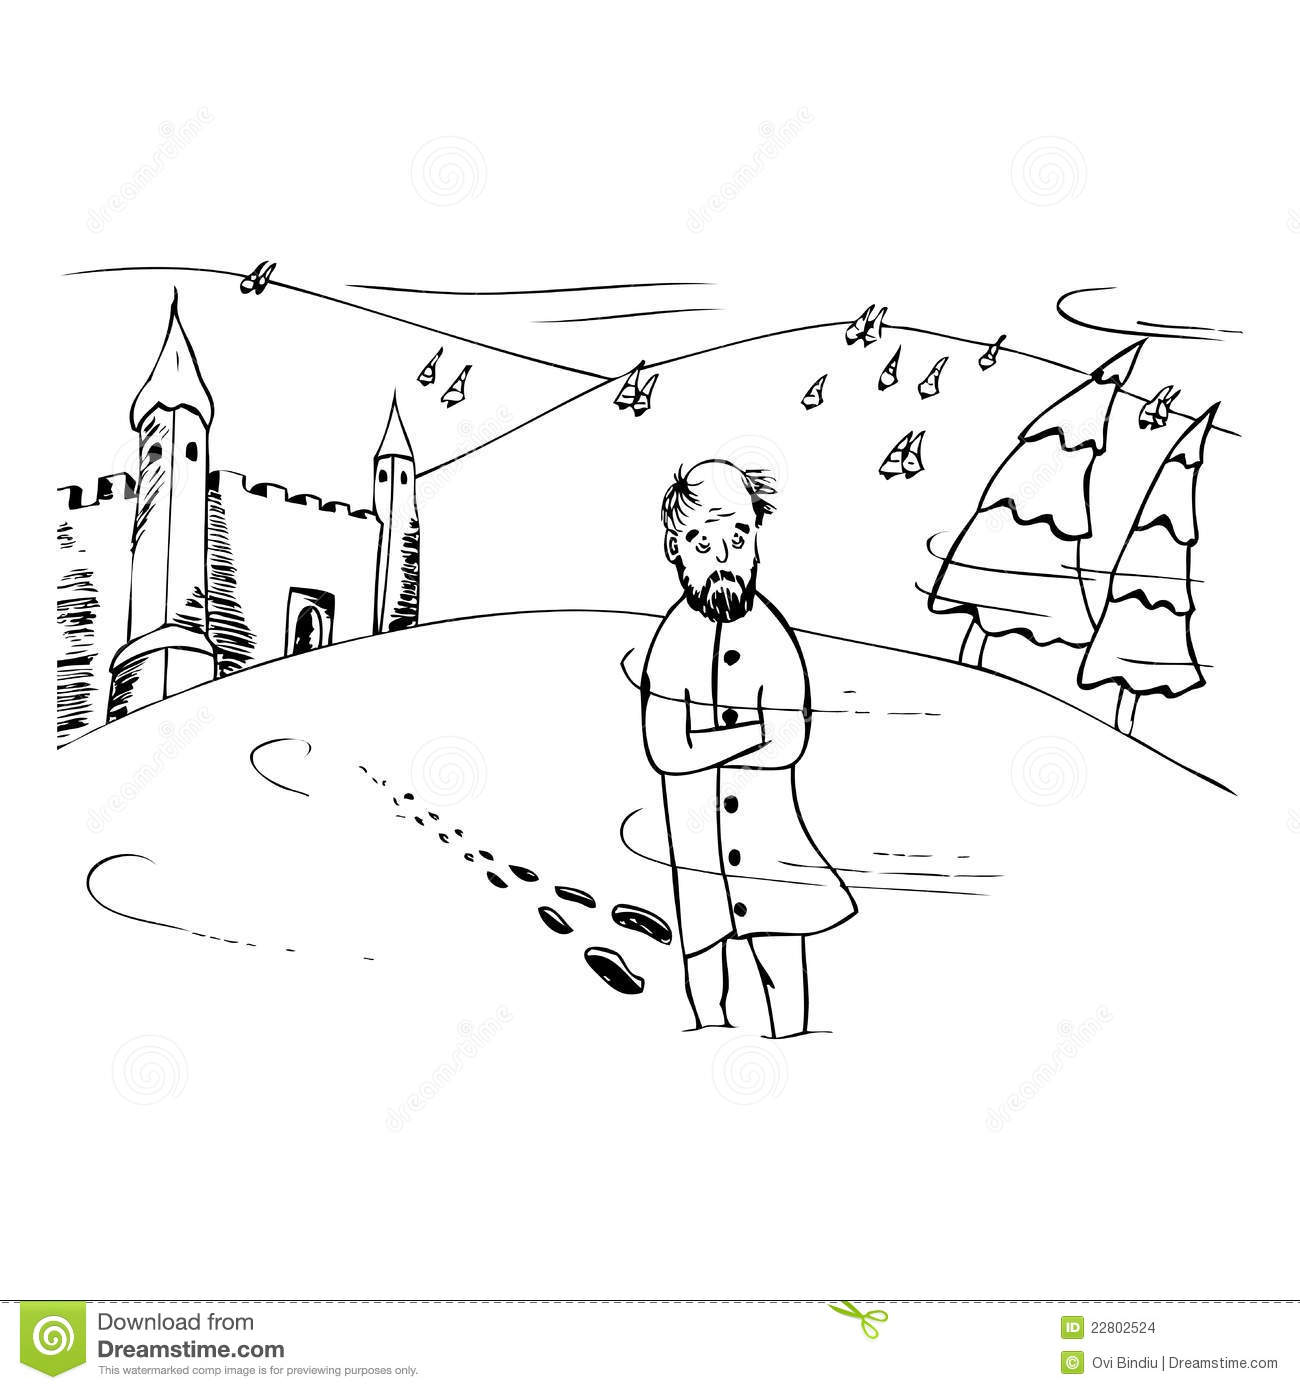 Children Walking In Snow Colouring Pages  Page 3